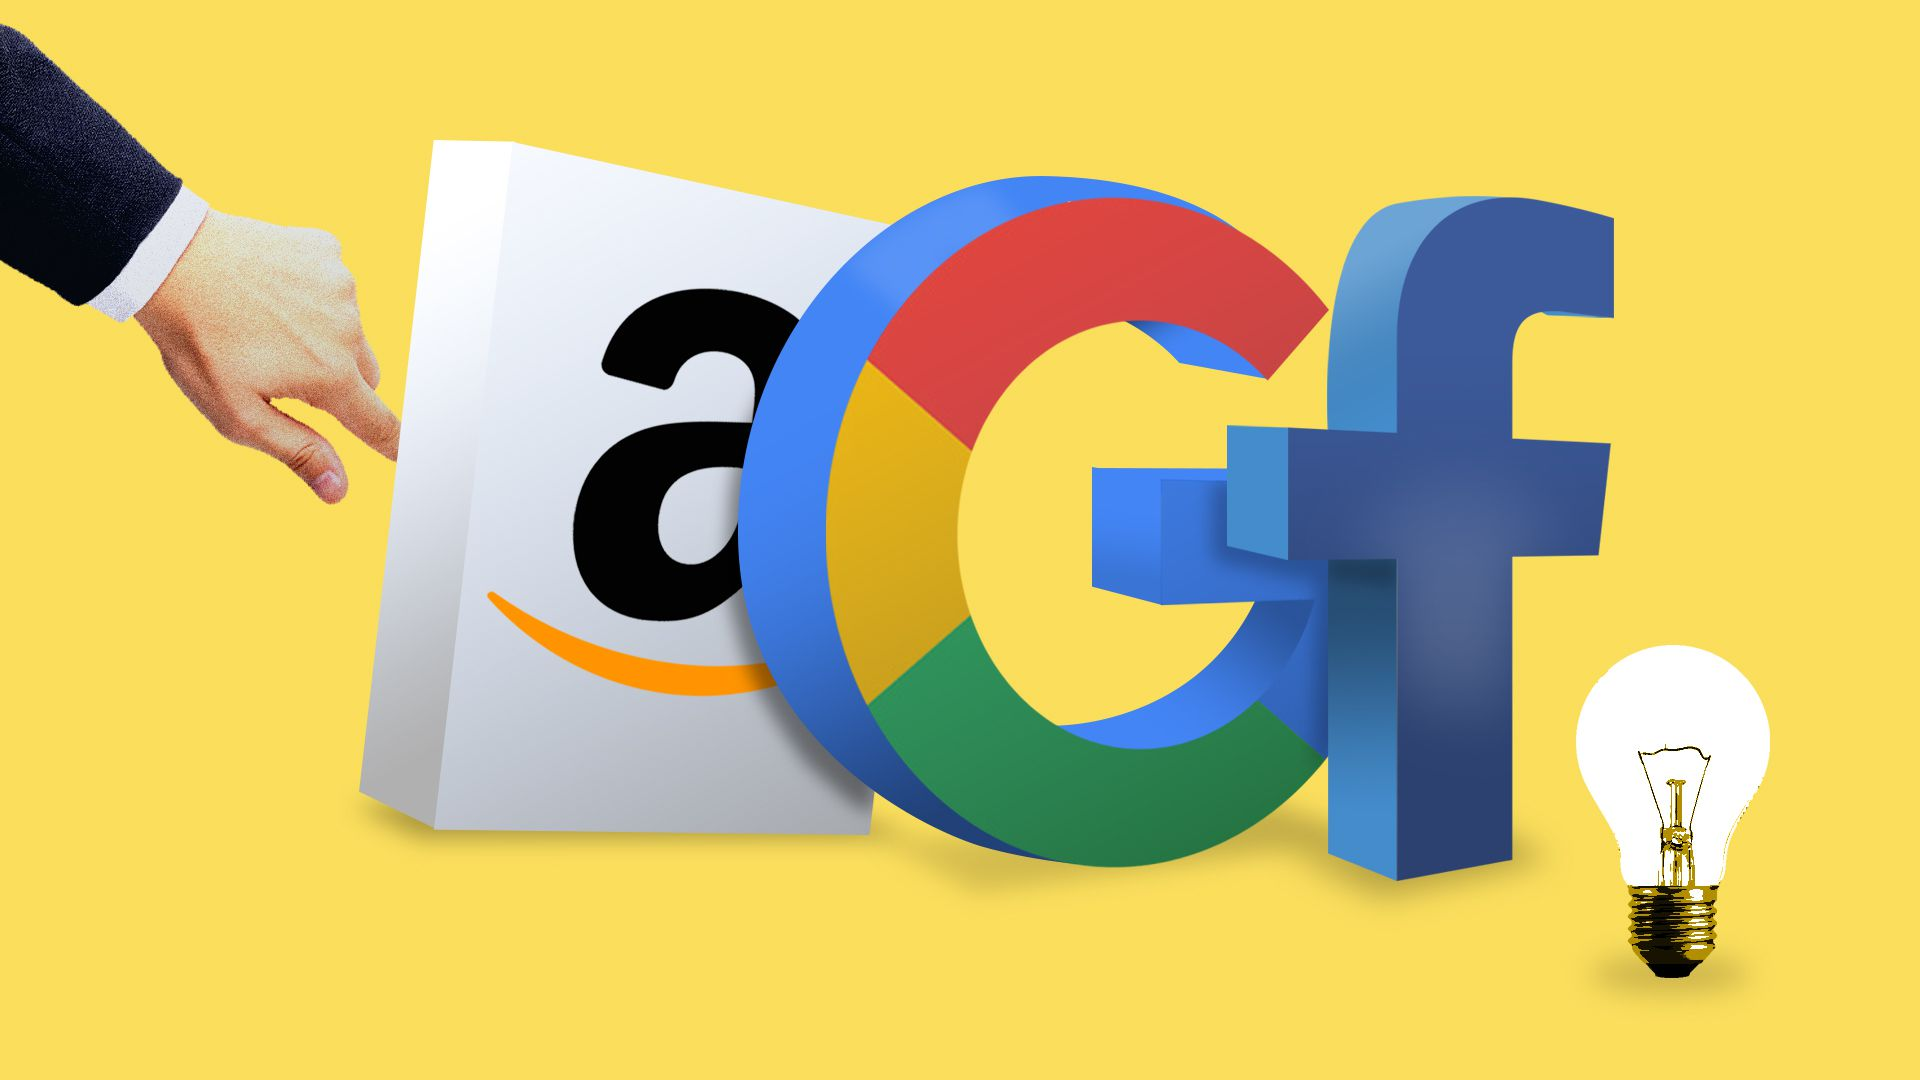 Amazon, Google, Facebook logos with a lawyer's hand behind them